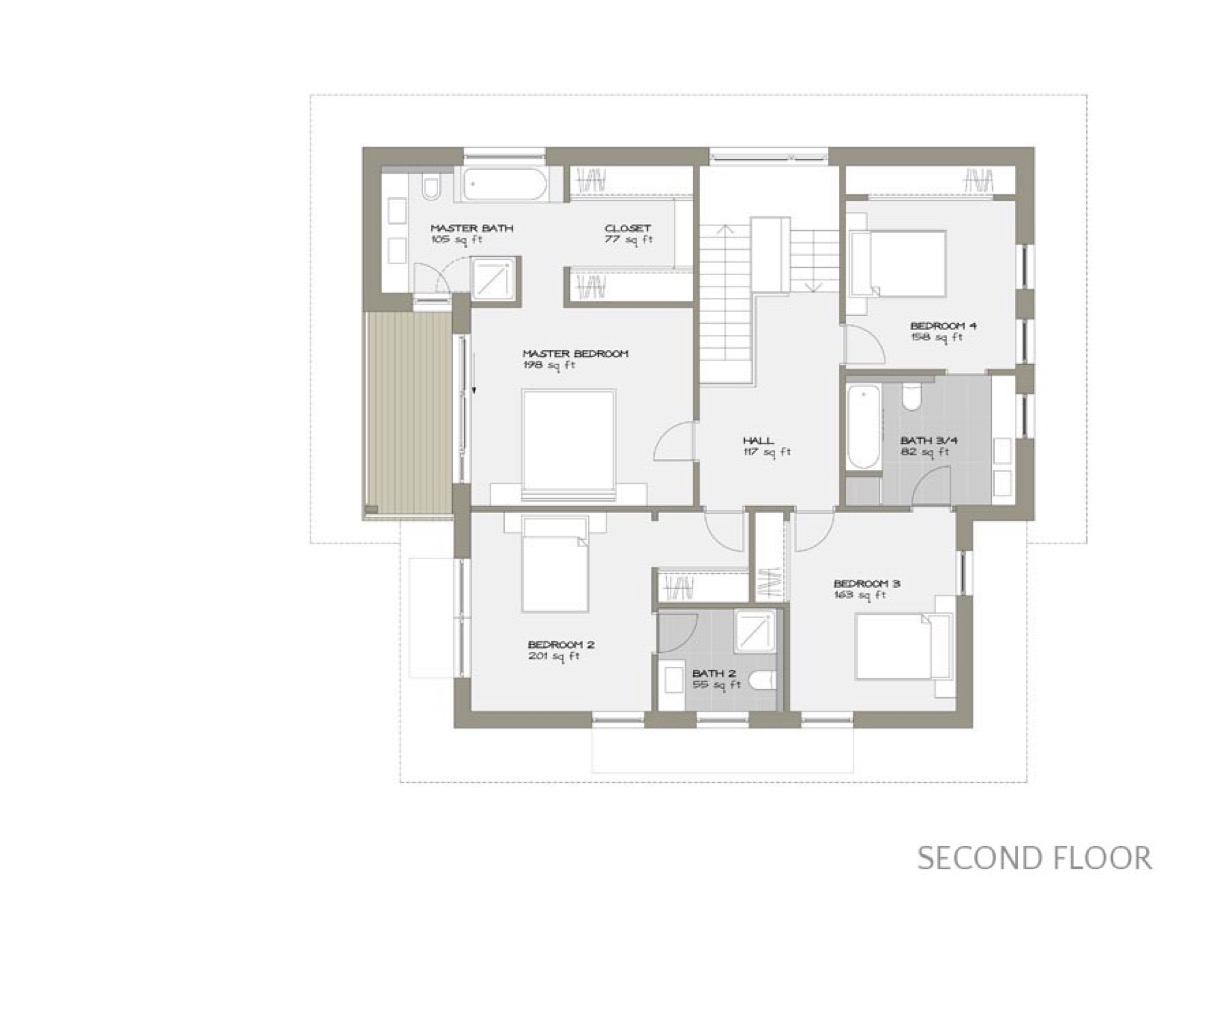 - Special Features:✓ Family friendly✓ Efficient design✓ Open plan layout